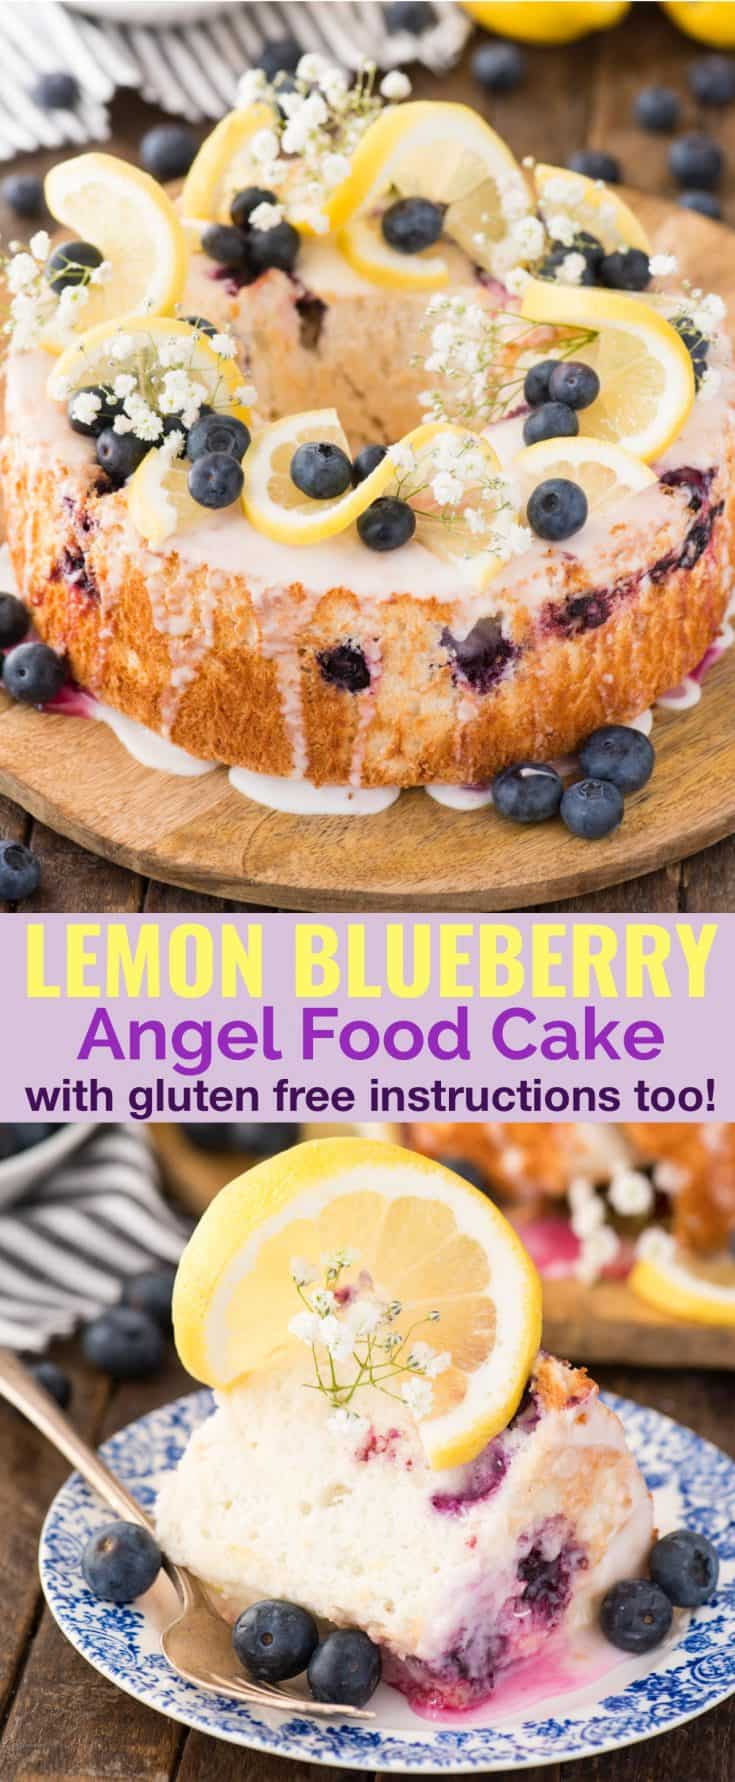 This homemade angel food cake is bursting with lemon and blueberries! There's lemon zest and blueberries baked into the fluffy angel food cake and a fresh lemon glaze on top. We'll show you how to make berry angel food cake without cake flour. Plus ALL THE TIPS for making homemade angel food cake and gluten free angel food cake too! #angelfoodcake #lemonangelfoodcake #angelfoodcakedesserts